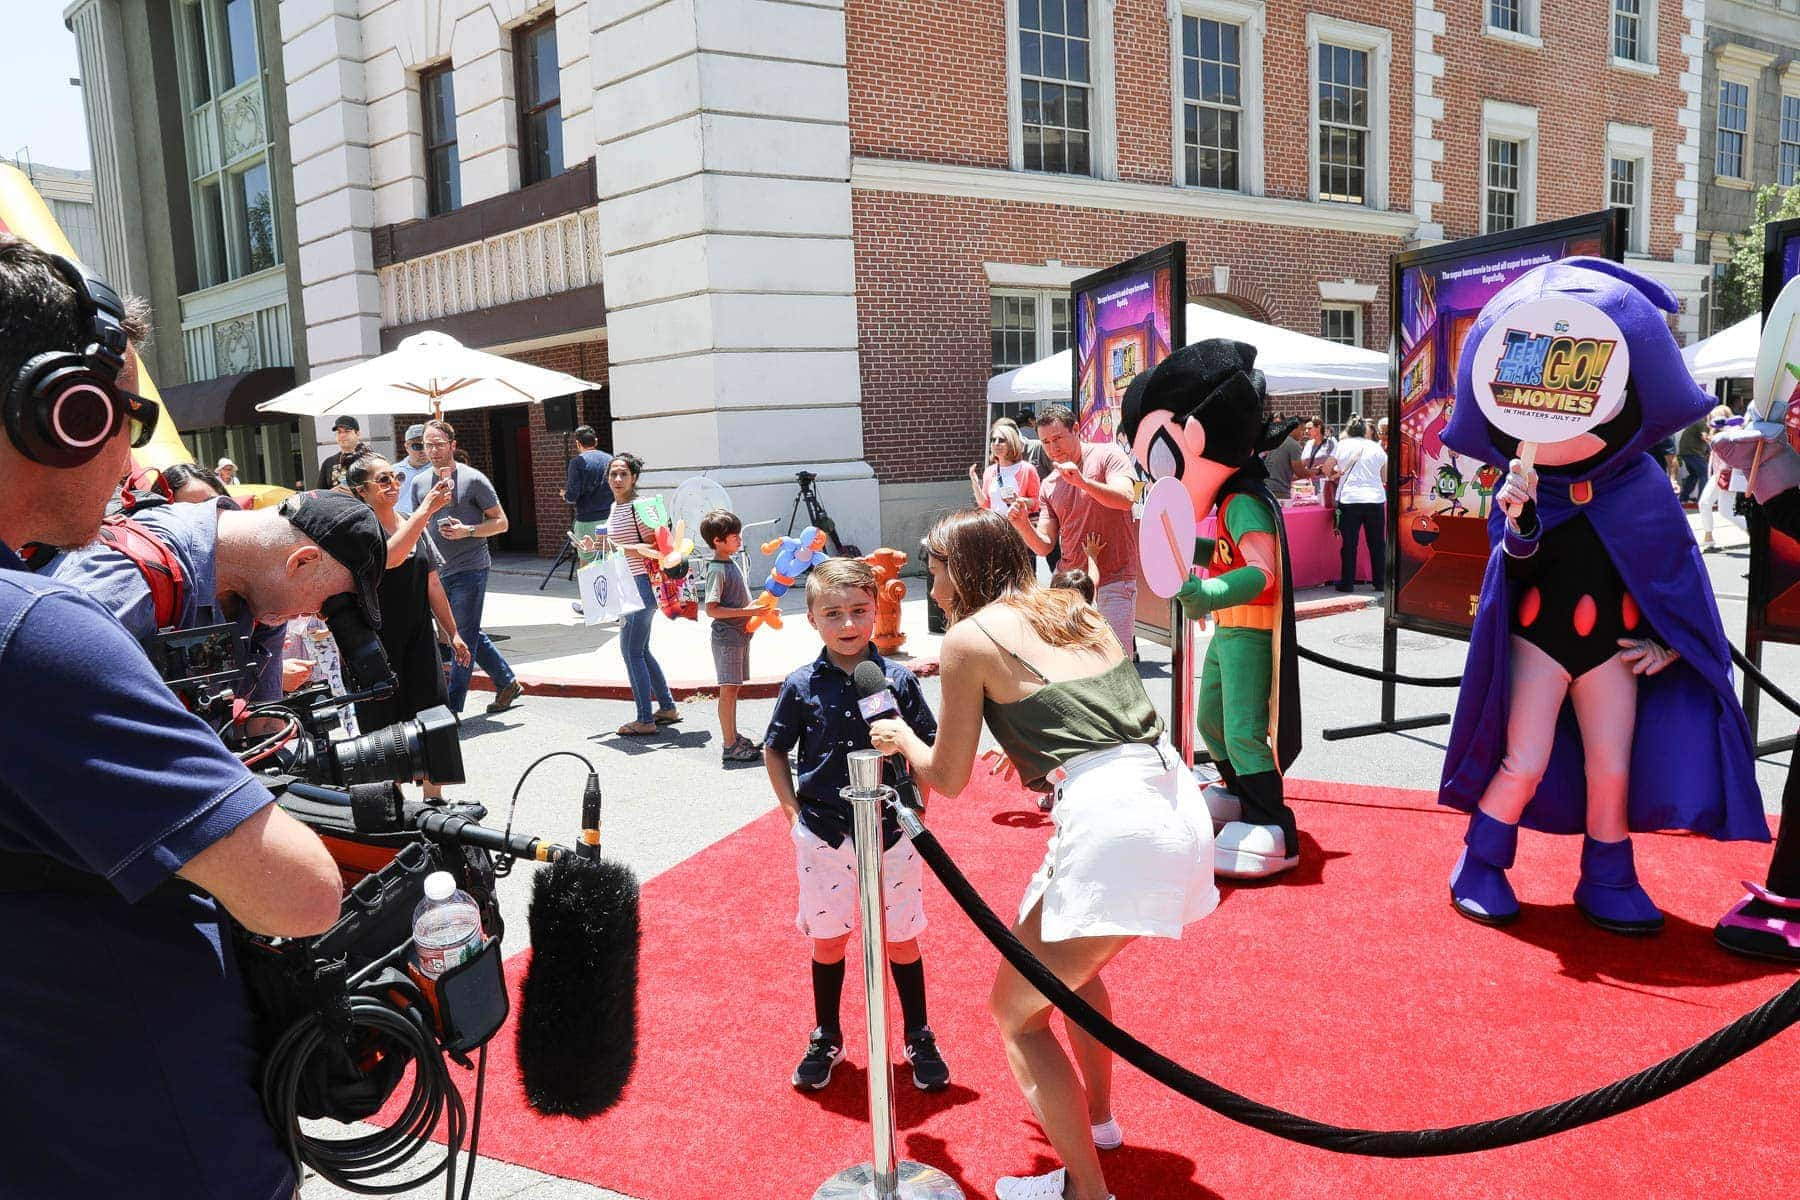 Lady Interviewing a Boy with Cameramen and Mascots #hollywood #warnerbrothers #teentitansgotothemovies #citygirlgonemom